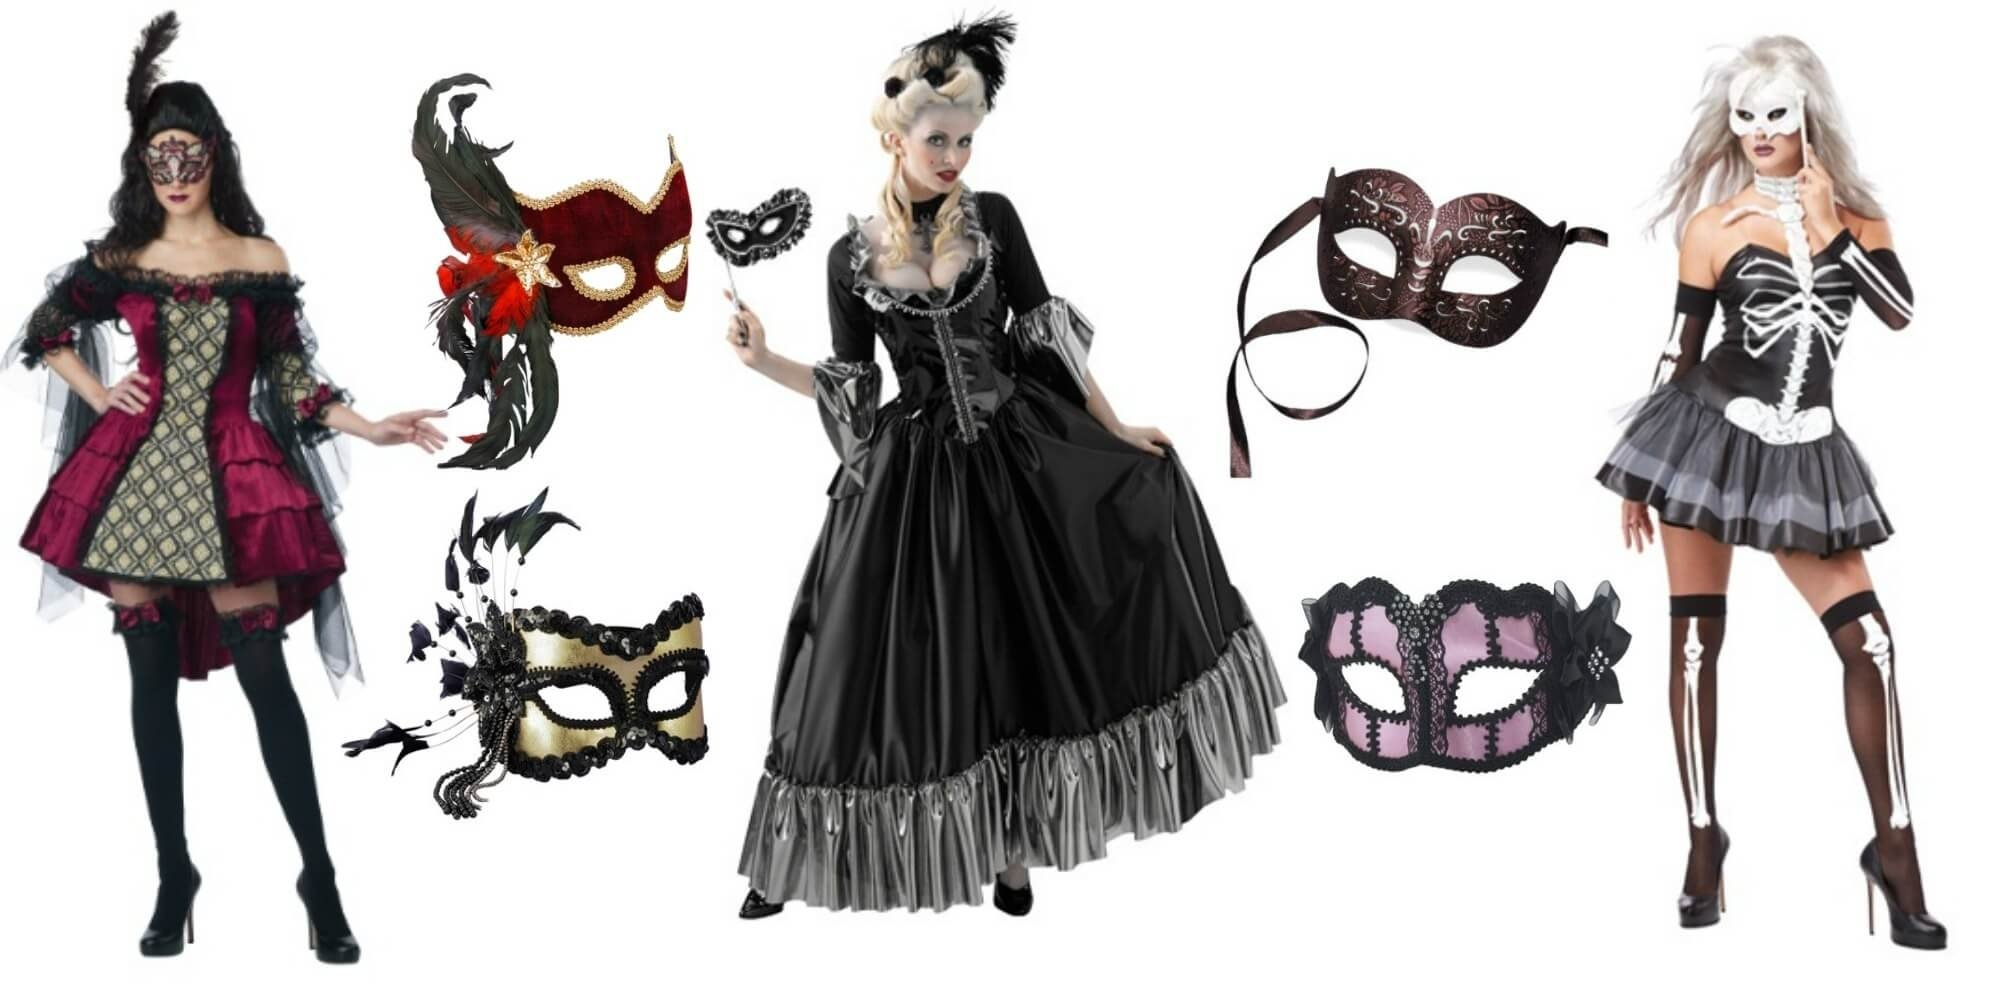 10 Fashionable Masquerade Outfit Ideas For Women sexy costumes for every event halloween costumes blog 1 2020